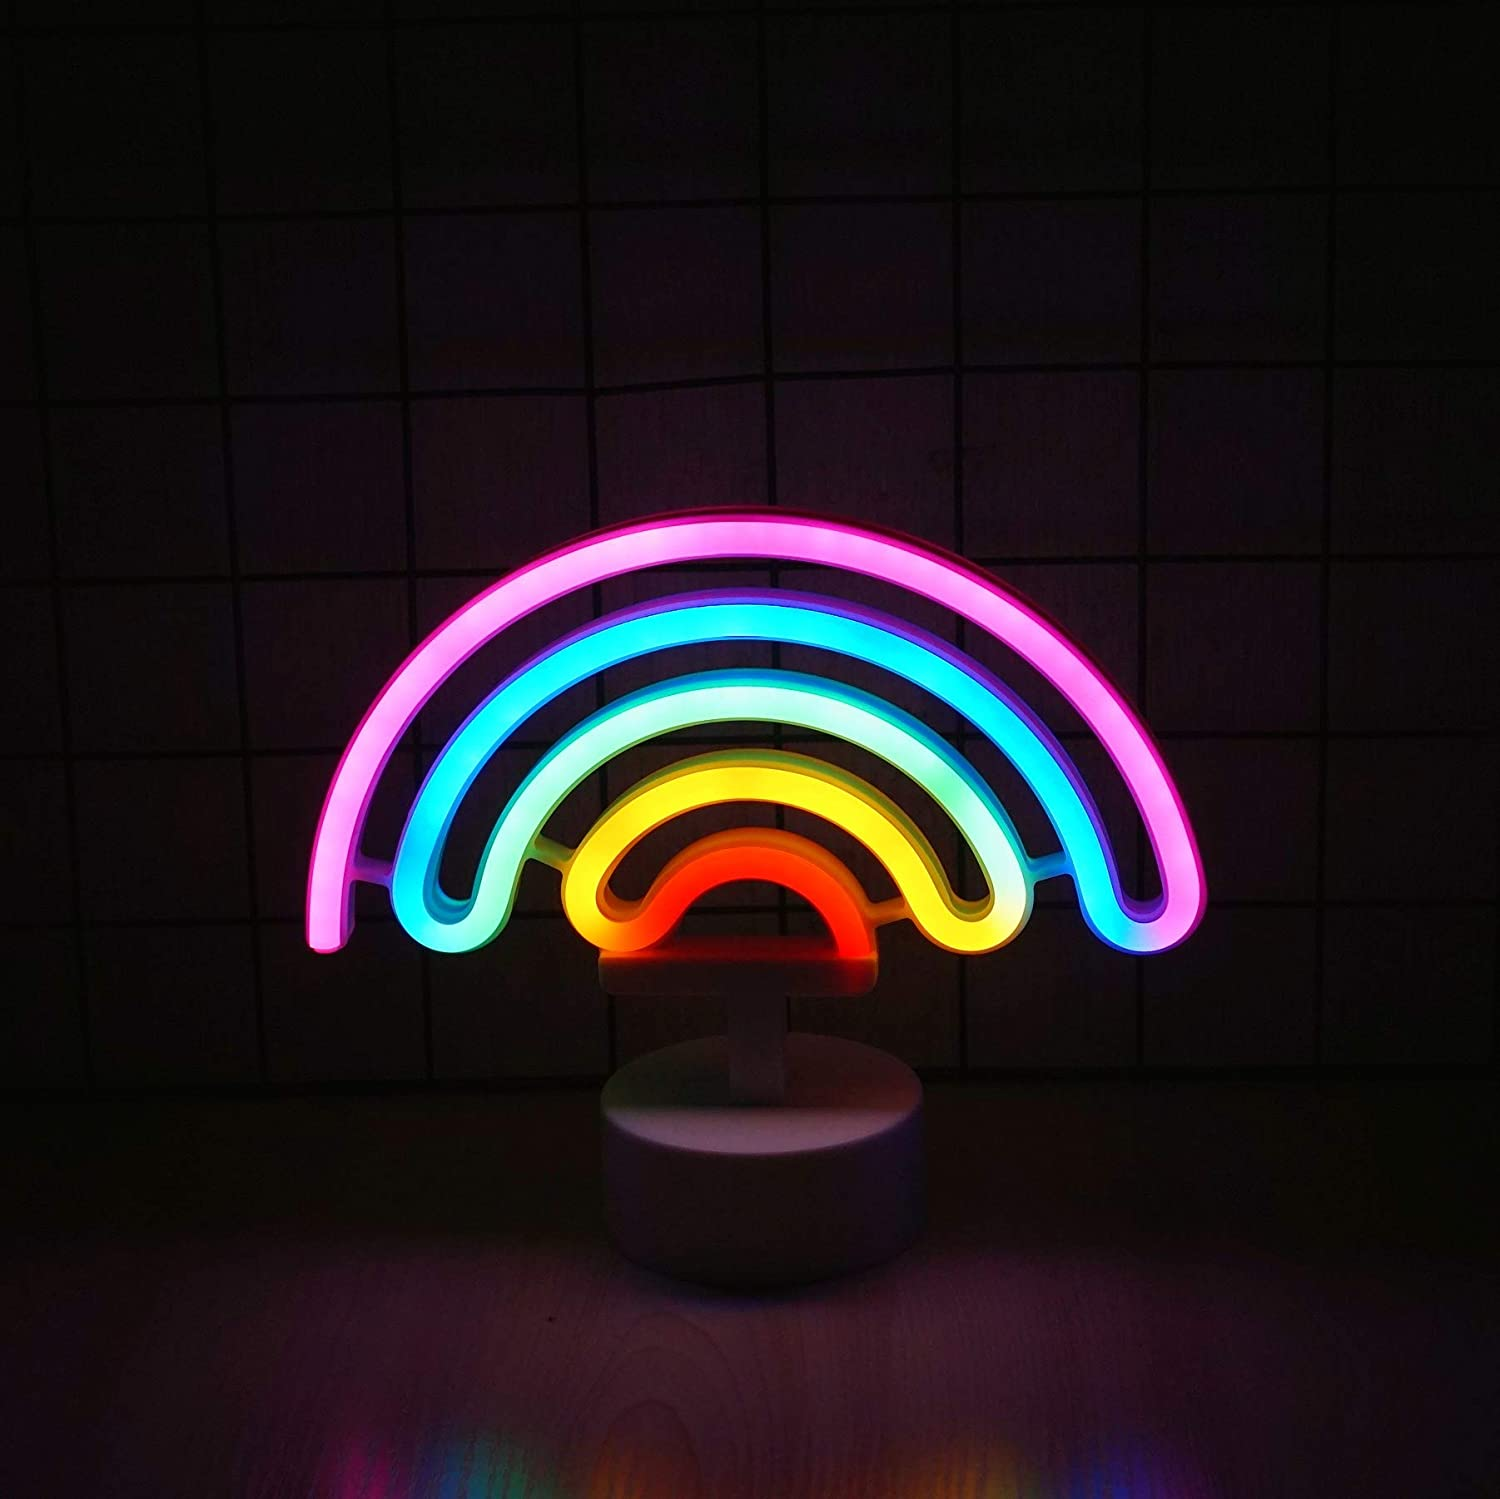 Ninight Rainbow Neon Light Cute Colorful Neon Rainbow Sign Battery or USB Powered Night Light as Wall Decor for Kids Room Living Room Festive Party with Base